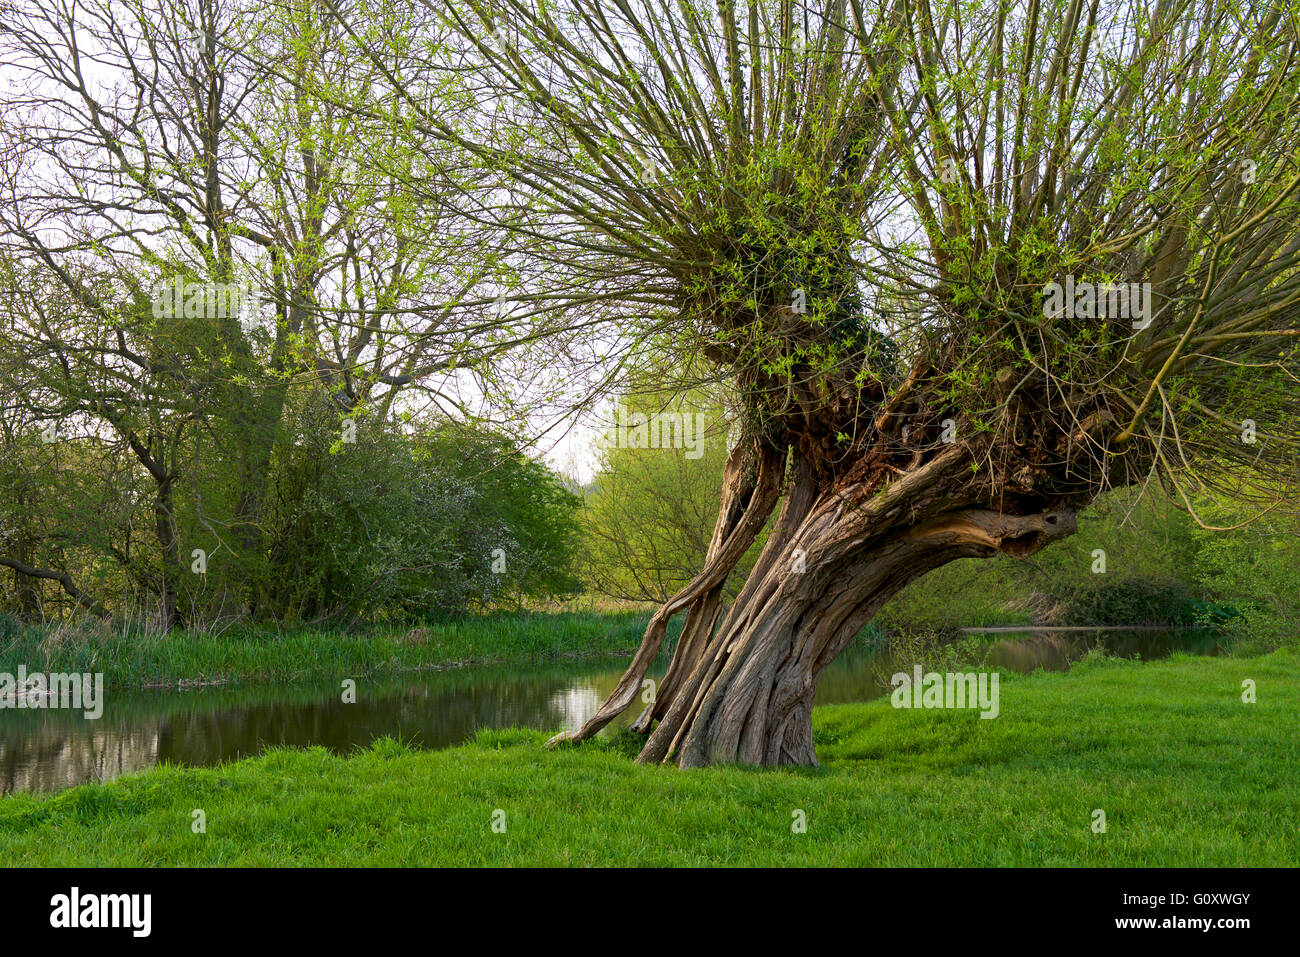 pollarded-willow-tree-by-the-river-stour-dedham-vale-essex-england-G0XWGY.jpg